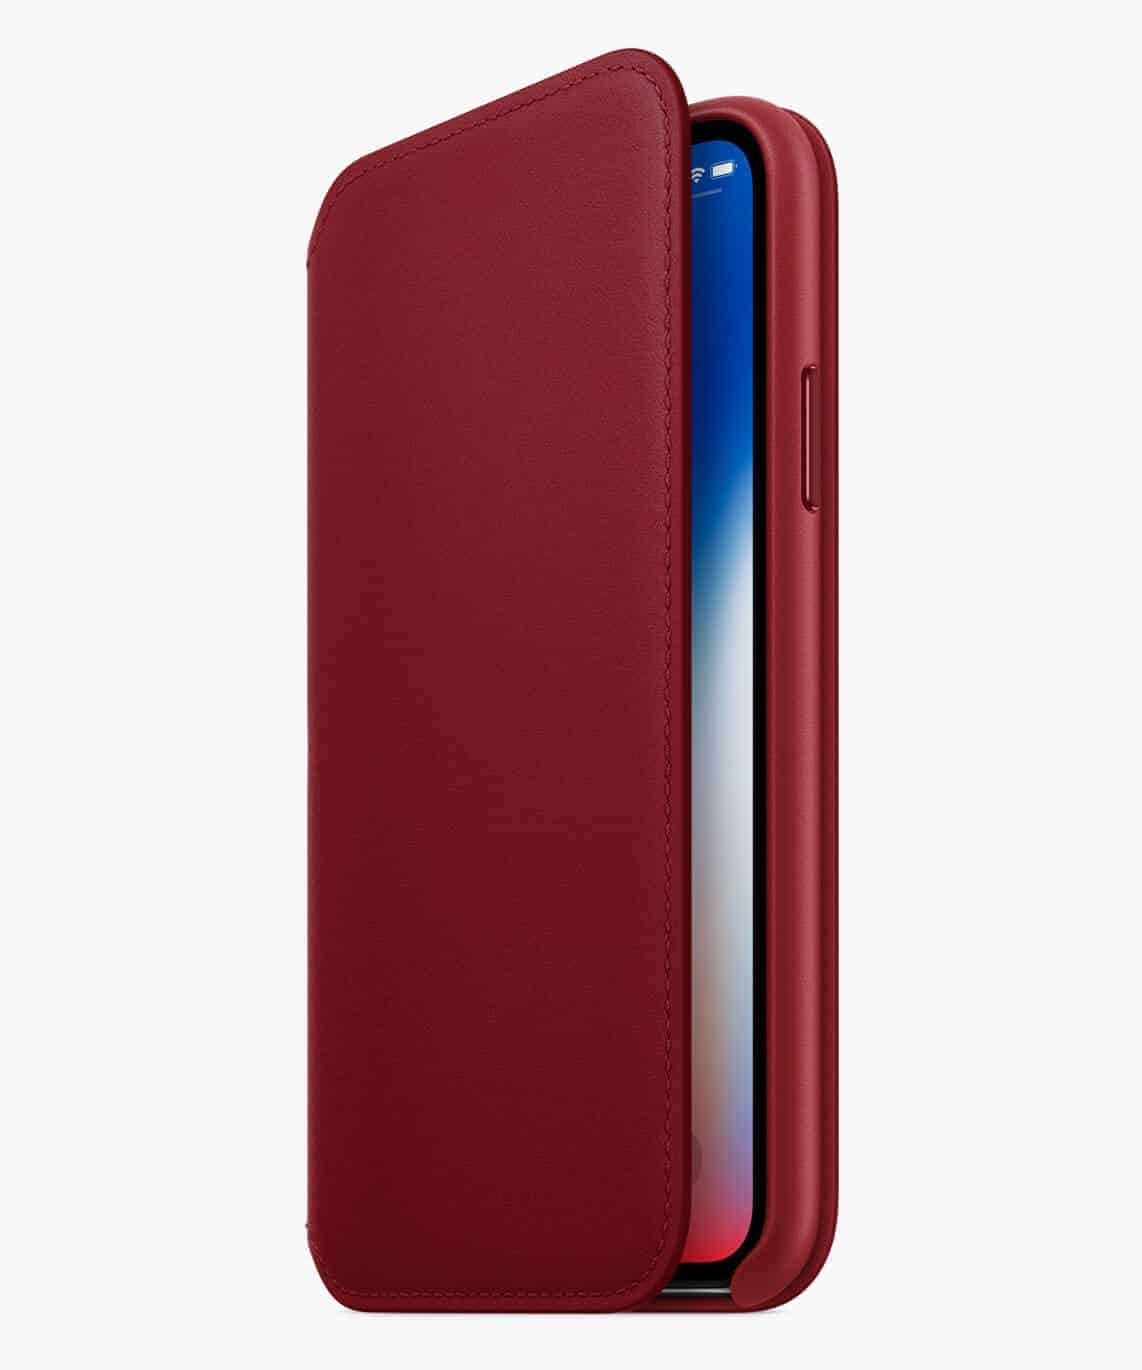 iPhone8-iPhone8PLUS-PRODUCT-RED_Folio-Case_041018-1 Apple Introduces iPhone 8 and iPhone 8 Plus (PRODUCT)RED Special Edition